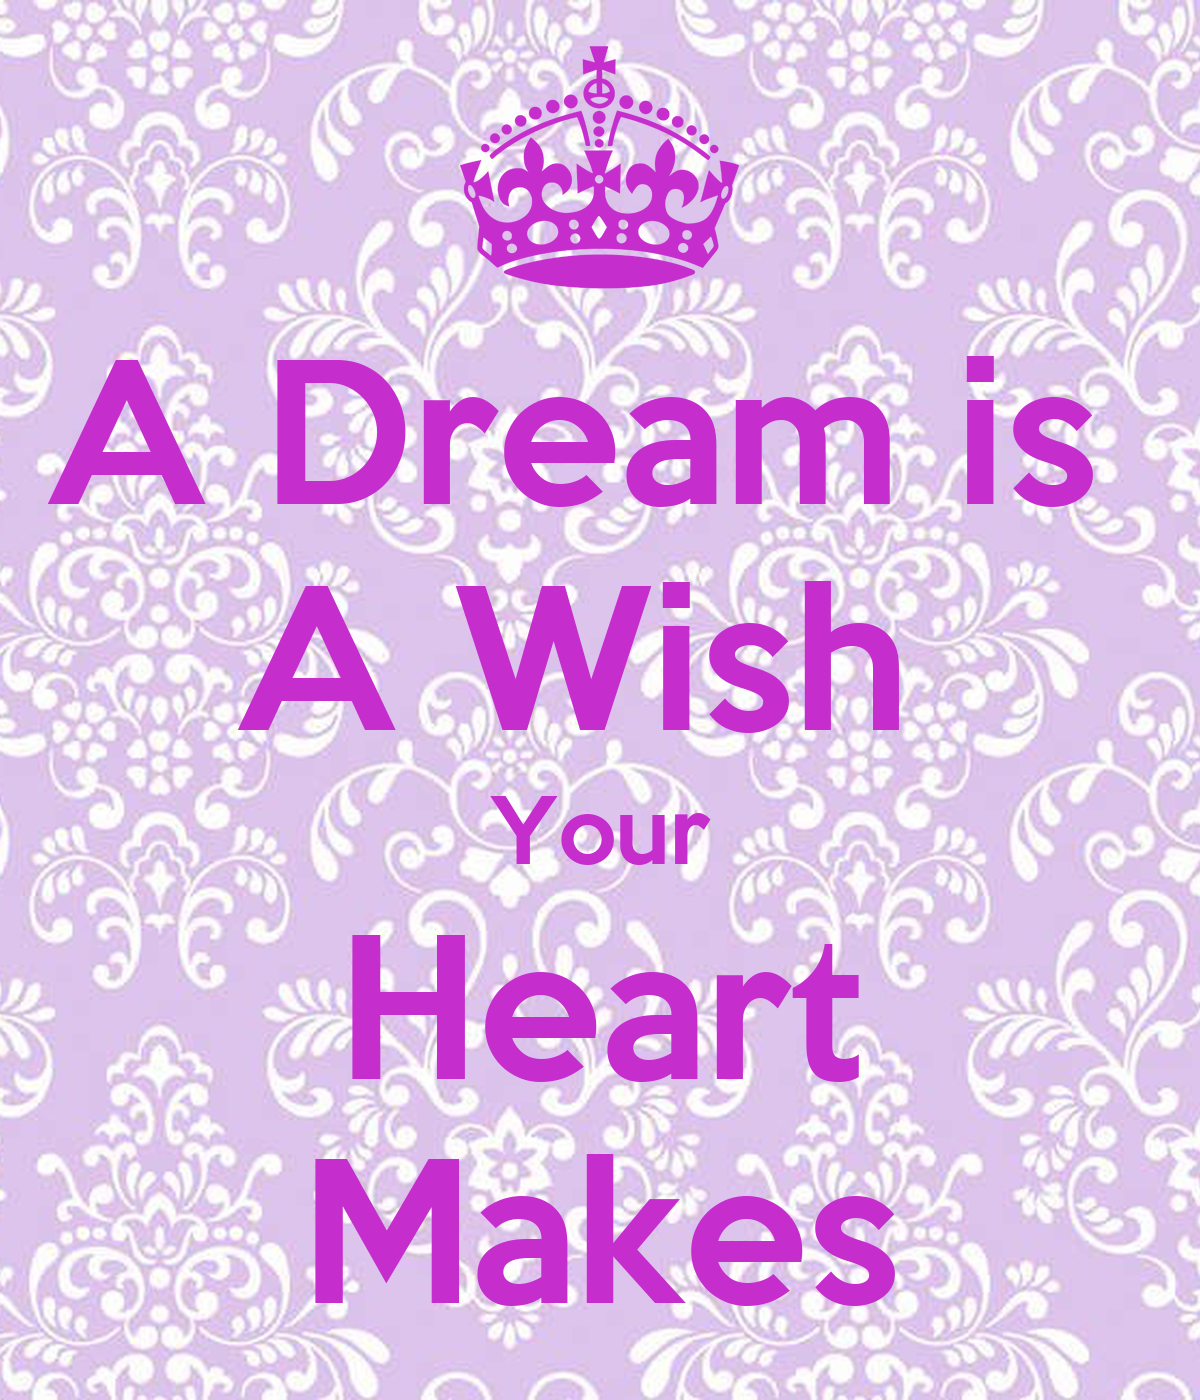 A Dream is A Wish Your Heart Makes - KEEP CALM AND CARRY ...A Dream Is A Wish Your Heart Makes